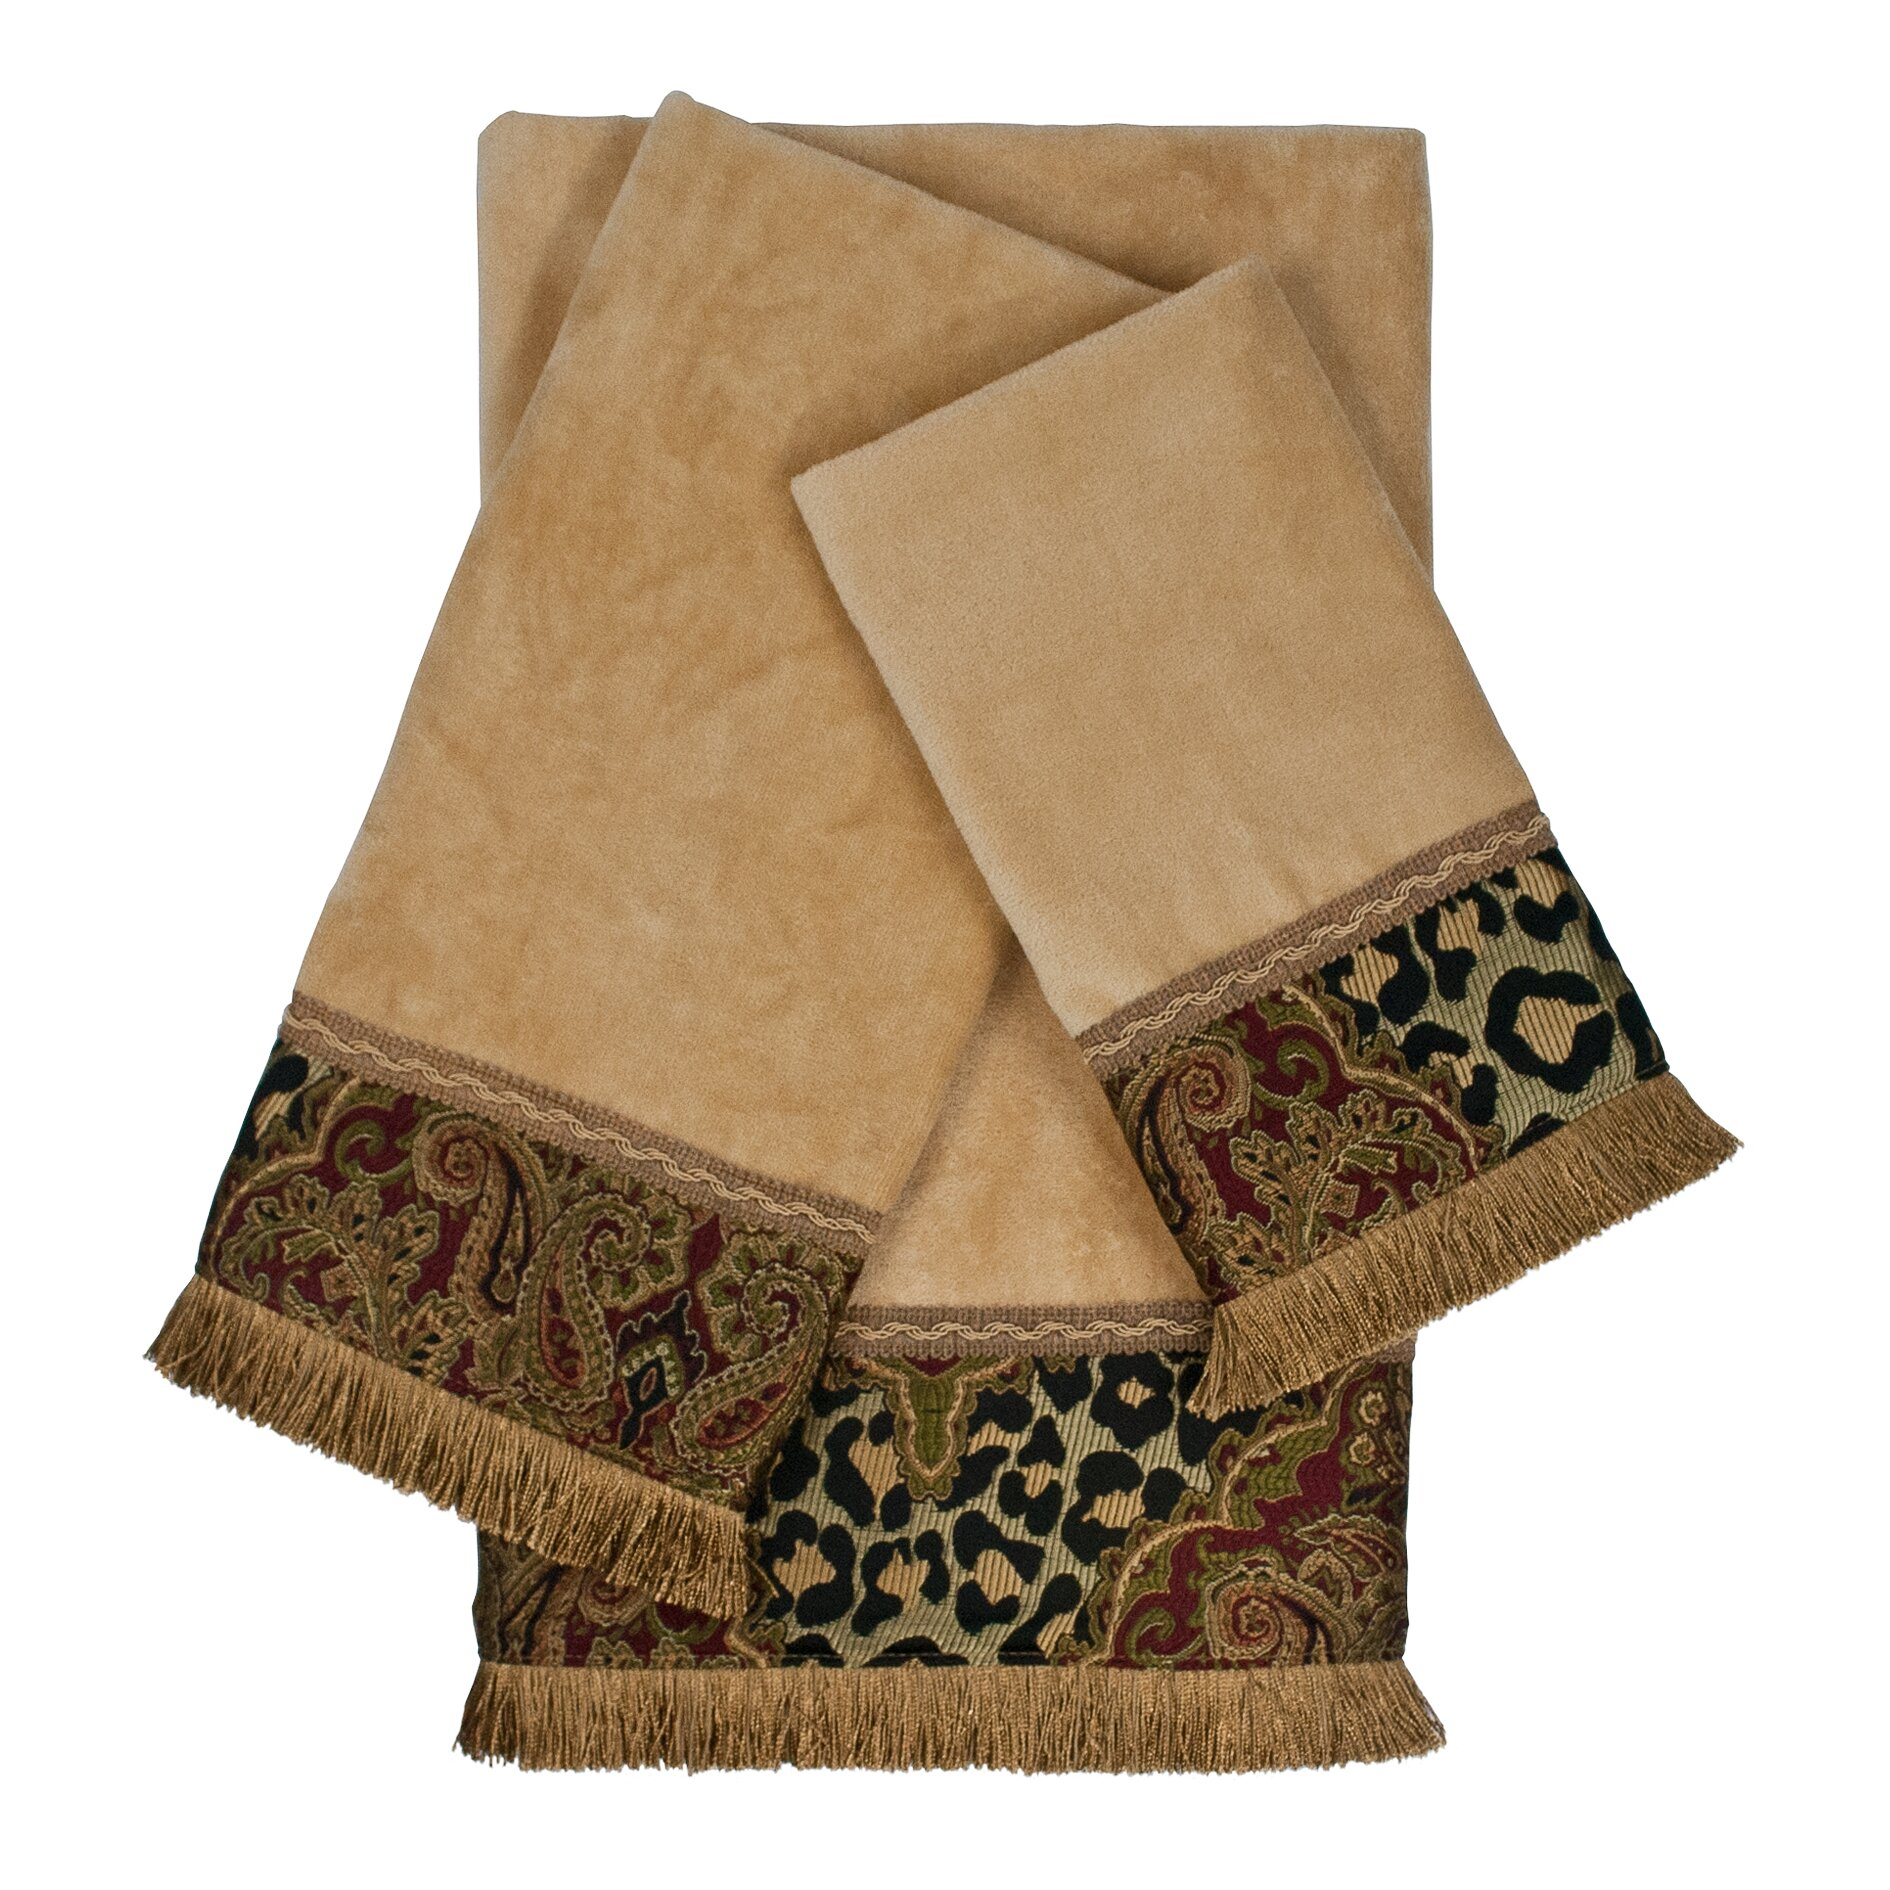 Sherry kline tangiers decorative embellished 3 piece towel for Decorative bath towels